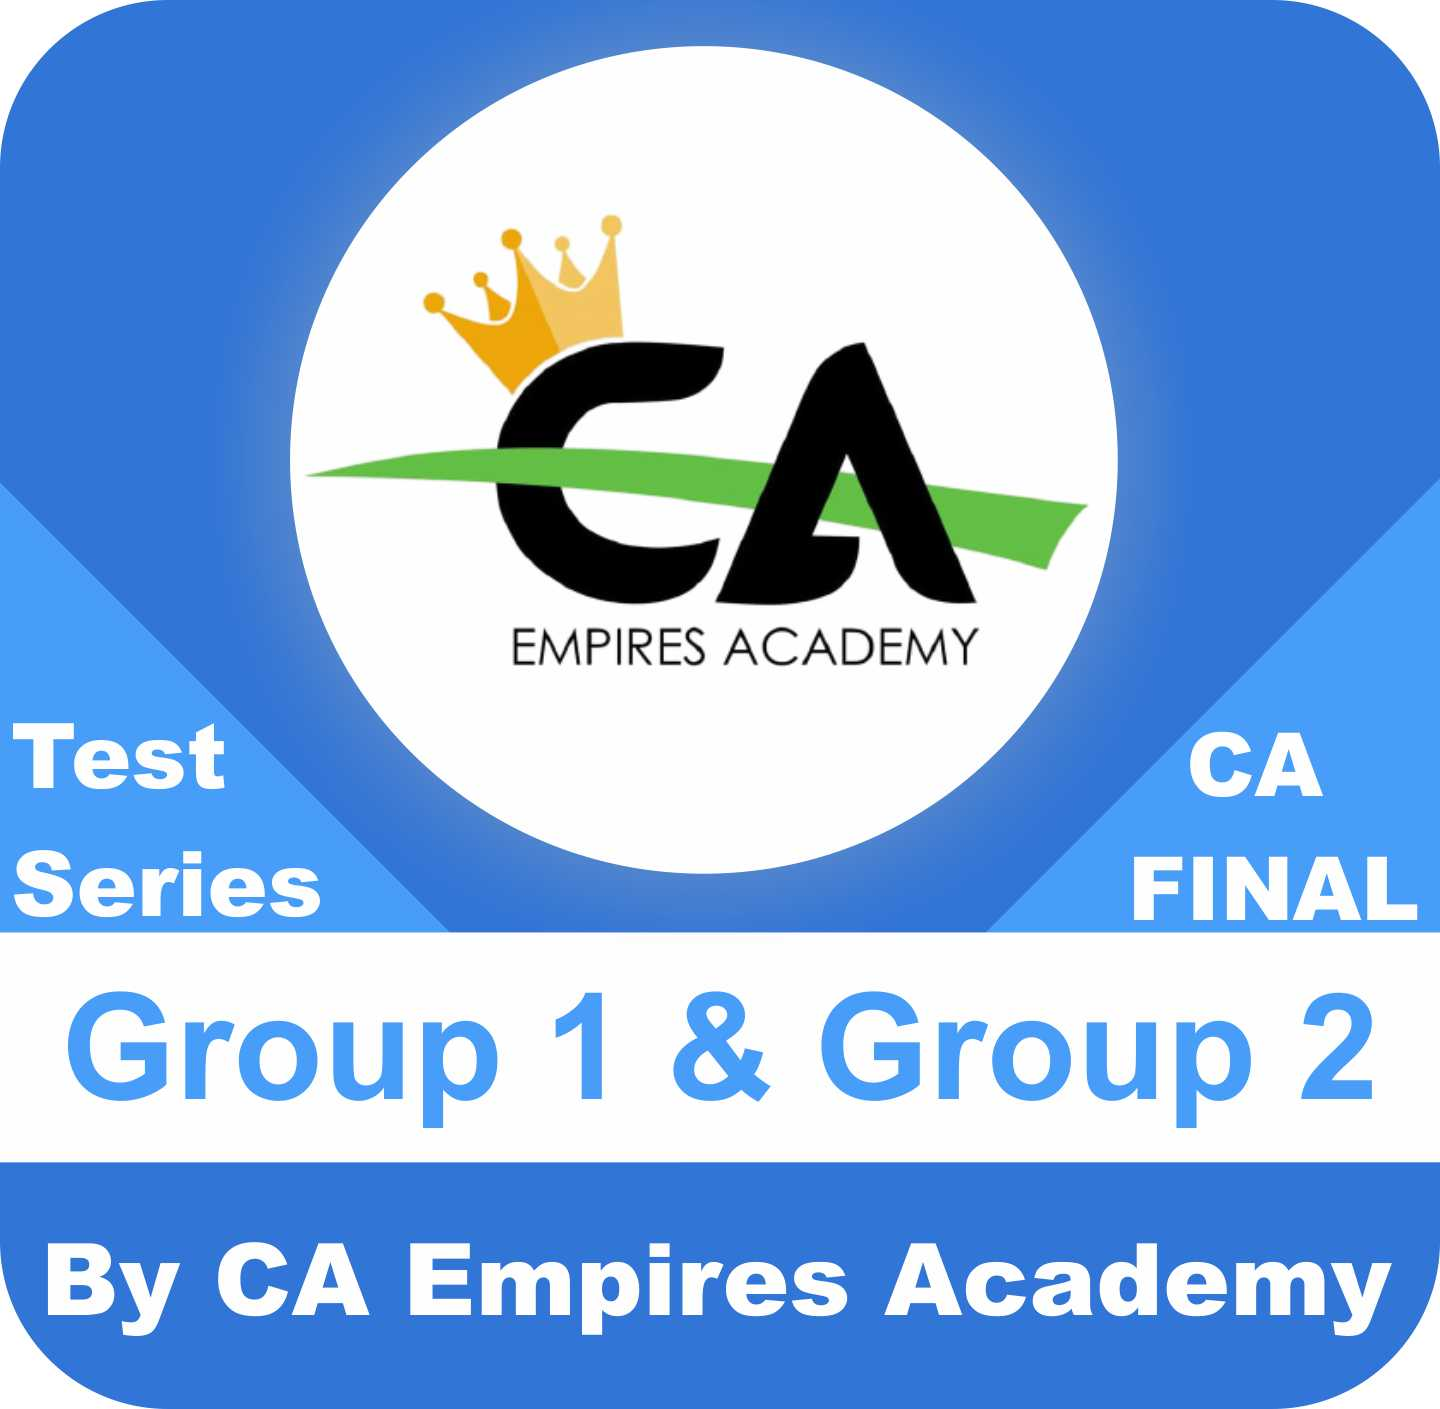 CA Final Group One and Group Two Test Series in Bronze Plan by CA Empires Academy